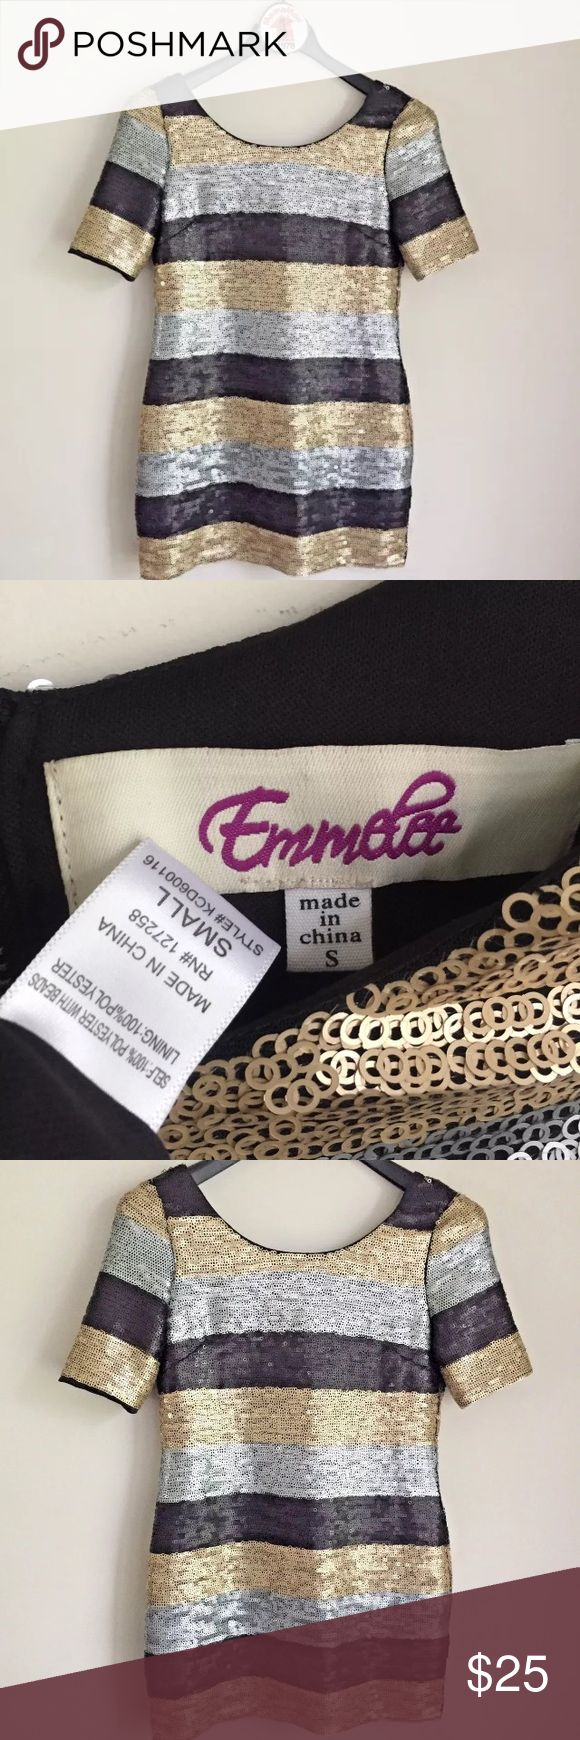 """Emmelee Metallic Striped Ring Sequins Dress Women's Emmelee Black Gold Silver Striped Ring Sequins Dress  Full Back Zipper  Short sleeve  Lined  Pre-owned in great condition  Size S  Measures 18"""" across chest arm pit to arm pit laying flat  Length is 32"""" long Emmelee Dresses Mini"""